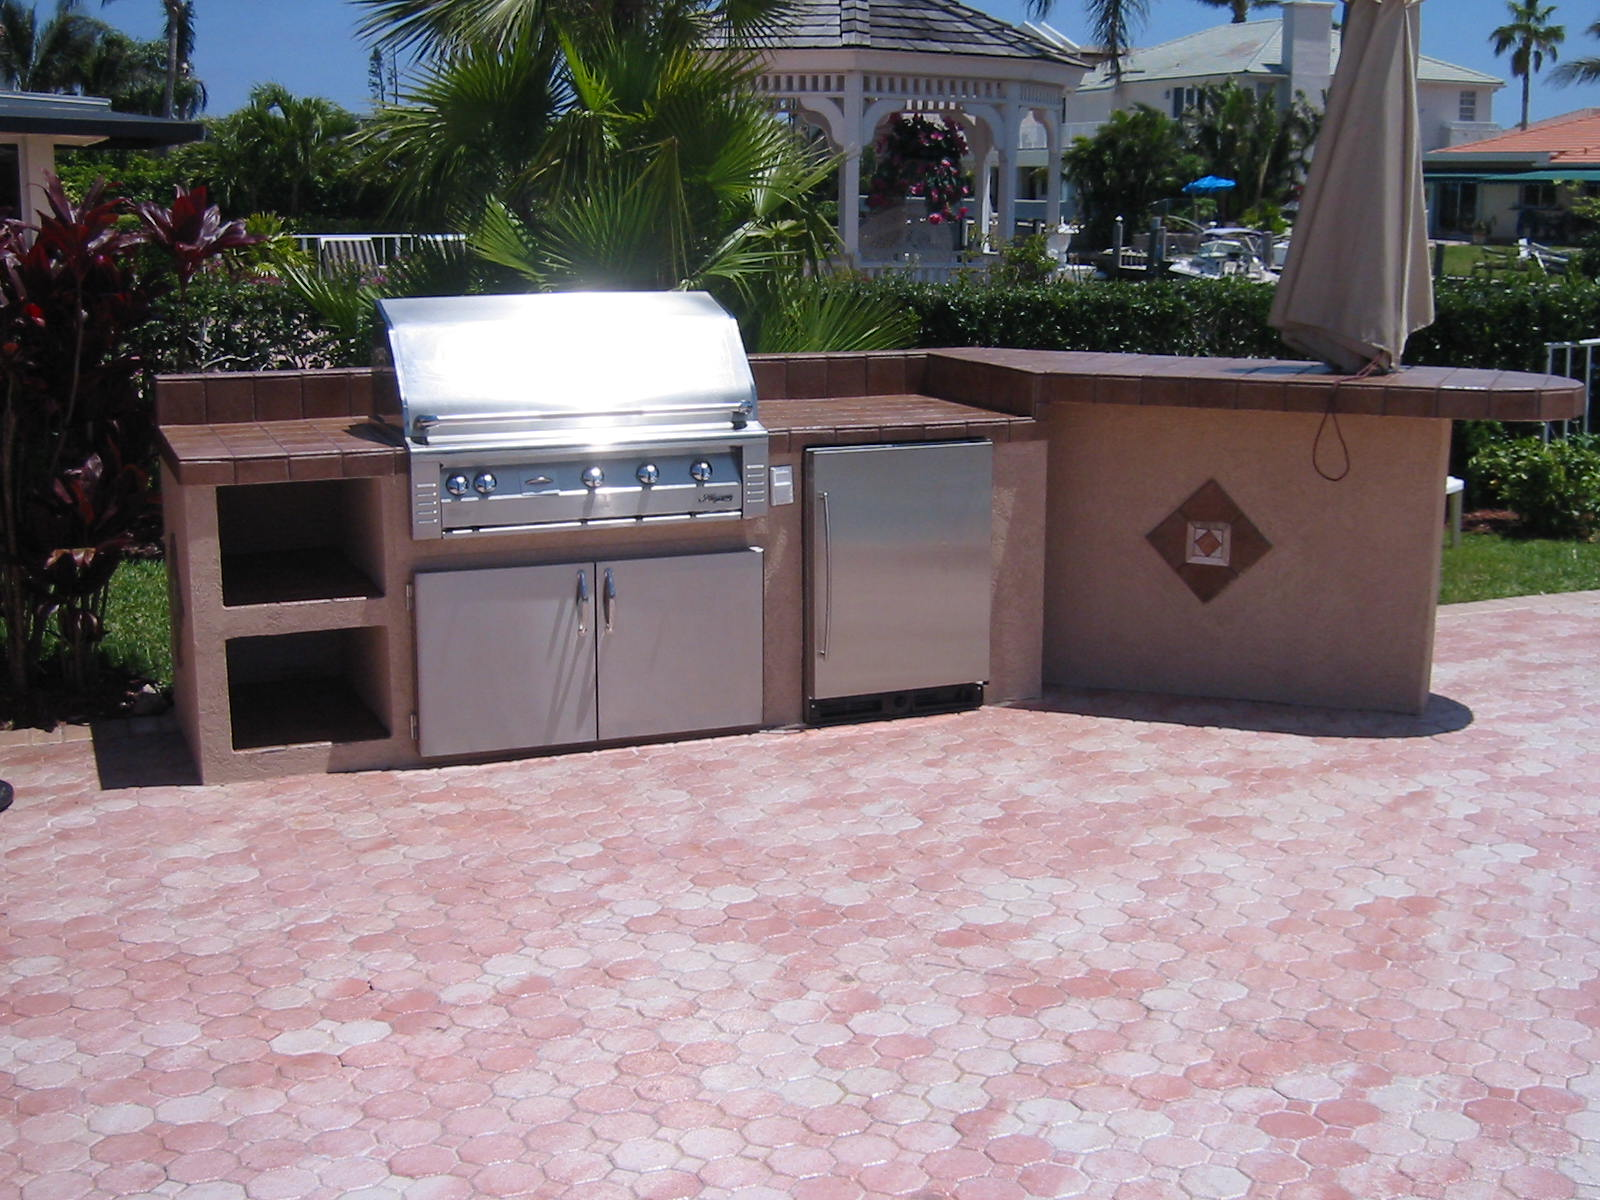 More outdoor kitchen grill island designs with built in ... on Built In Grill Backyard id=43859